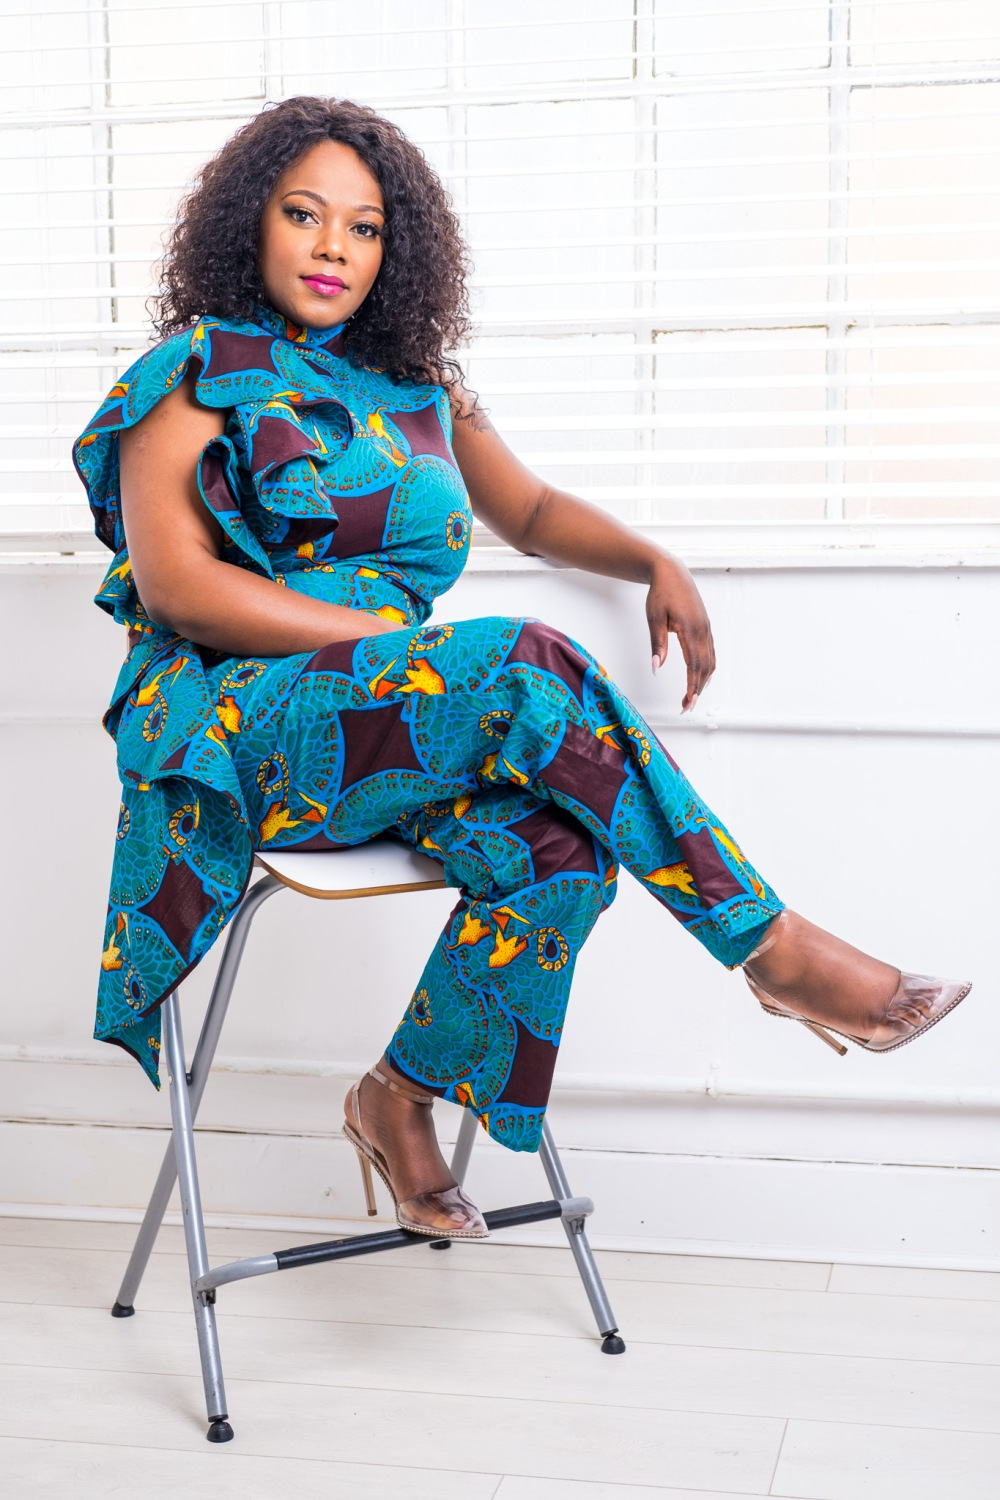 Fashion Designer and Entrepreneur Chiedza Dawn Ziyambe